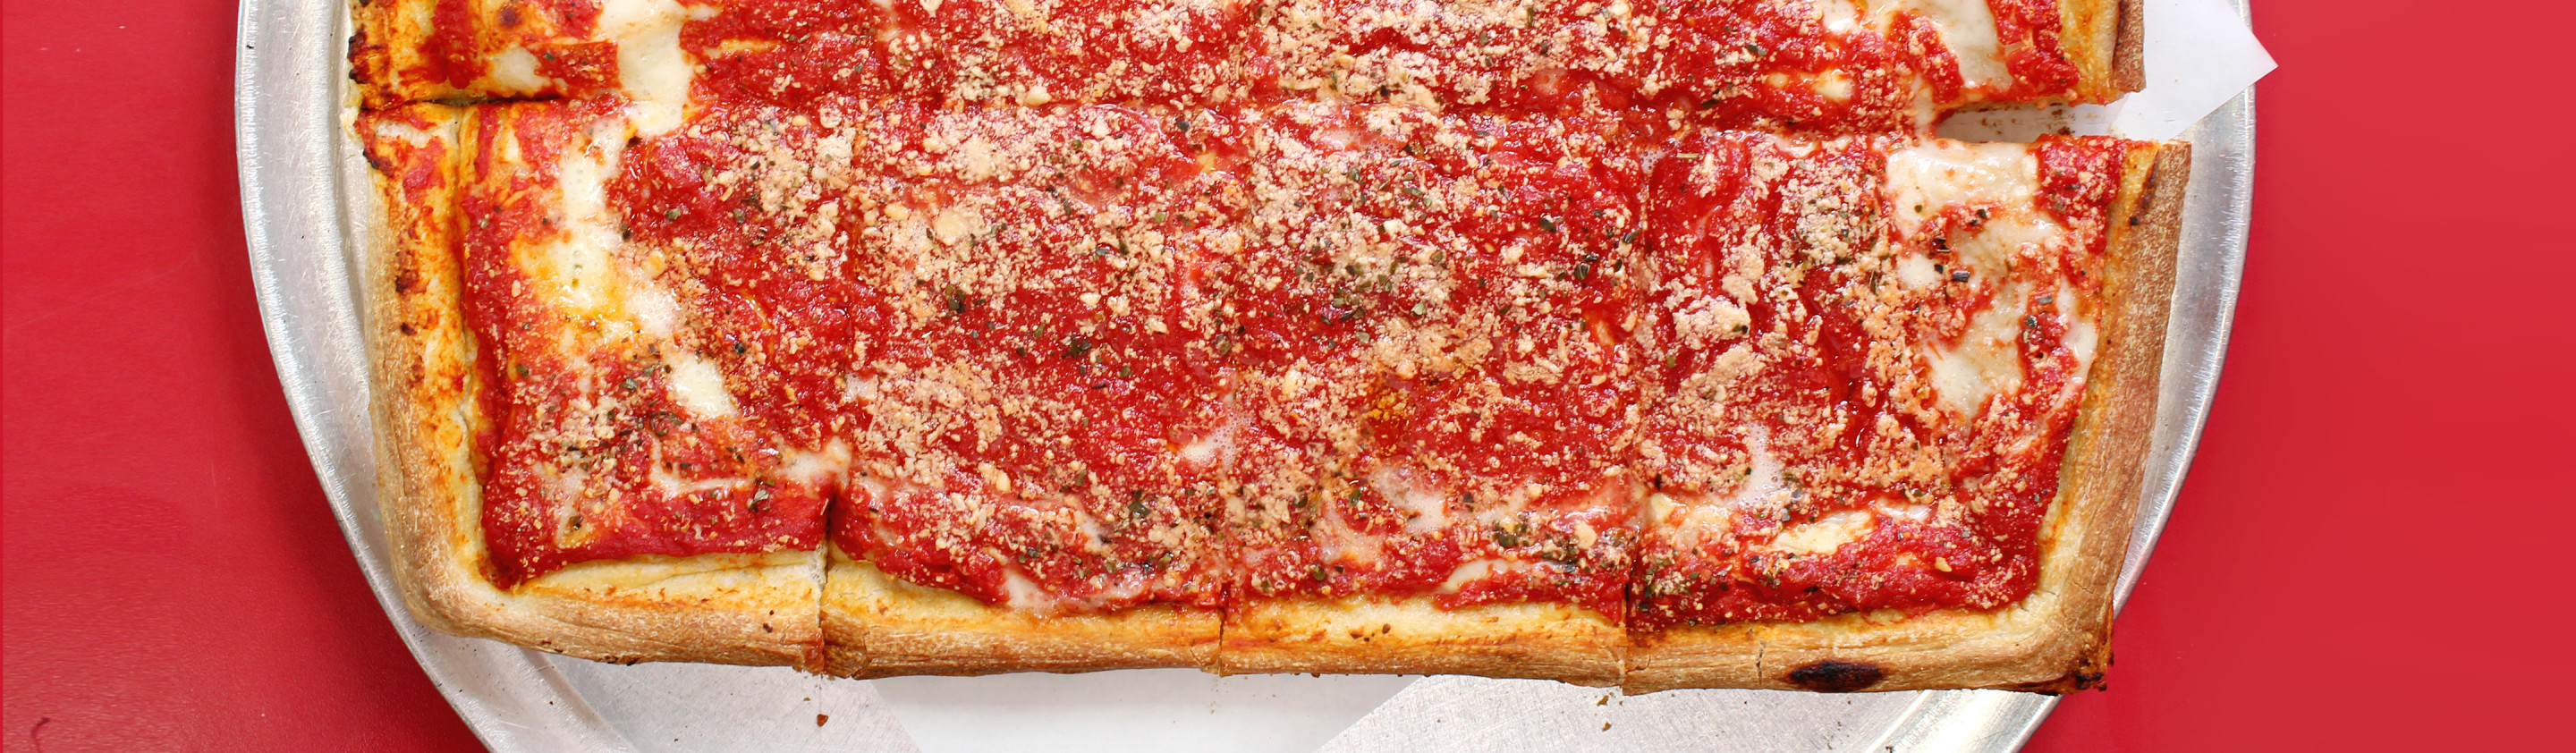 Sicilian Pizza - Desktop